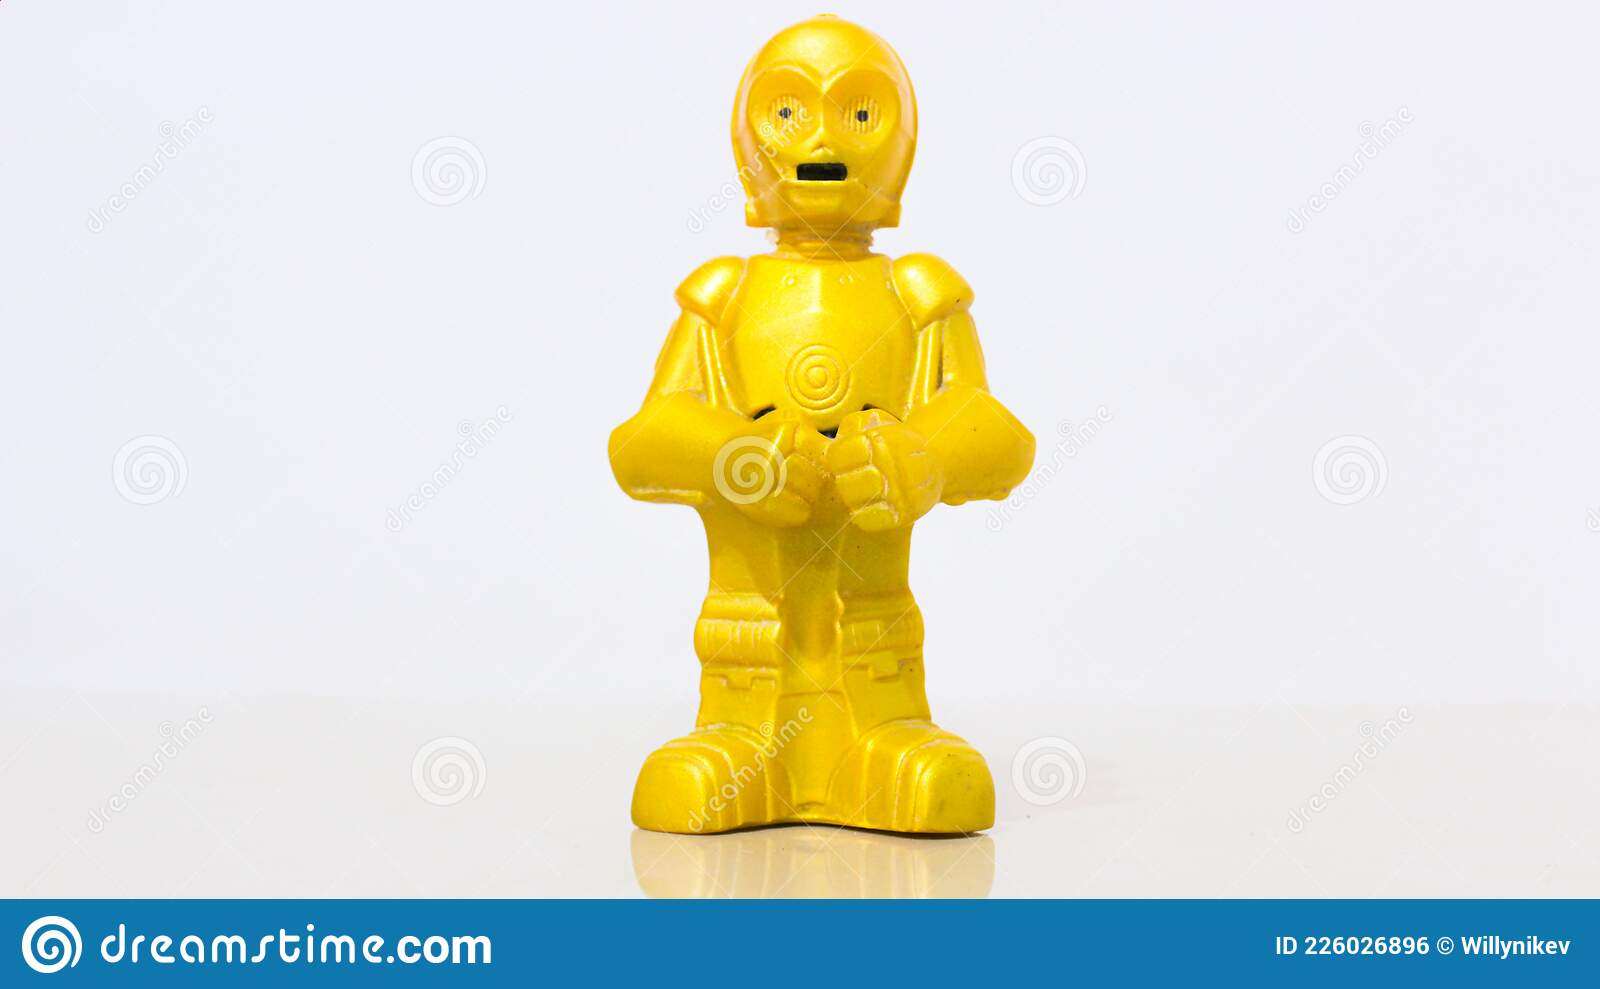 1 504 Star Wars Background Photos Free Royalty Free Stock Photos From Dreamstime